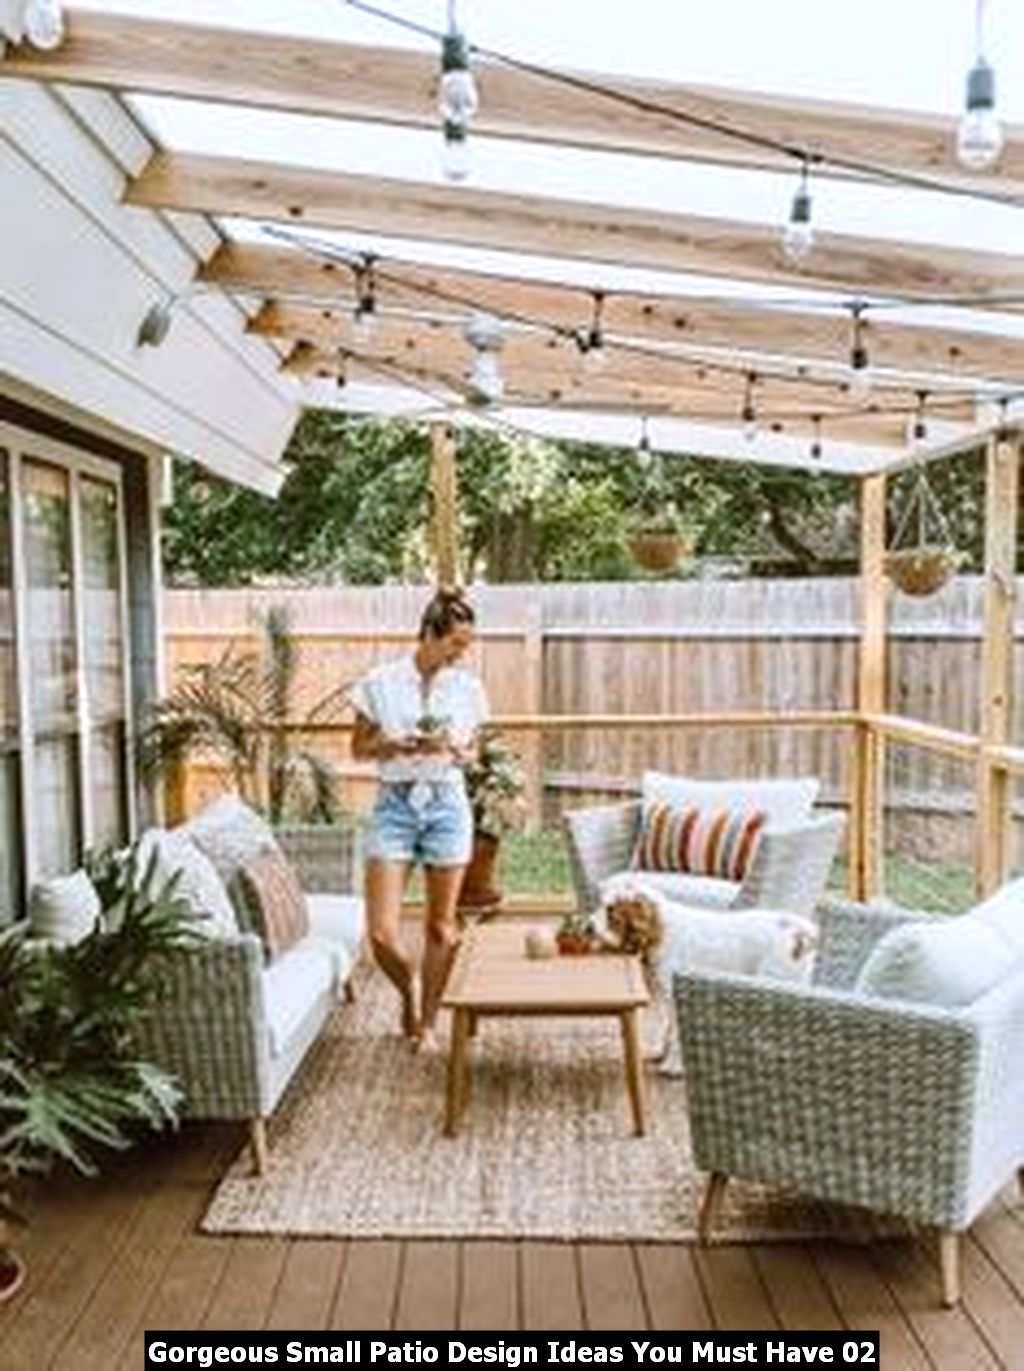 Gorgeous Small Patio Design Ideas You Must Have 02